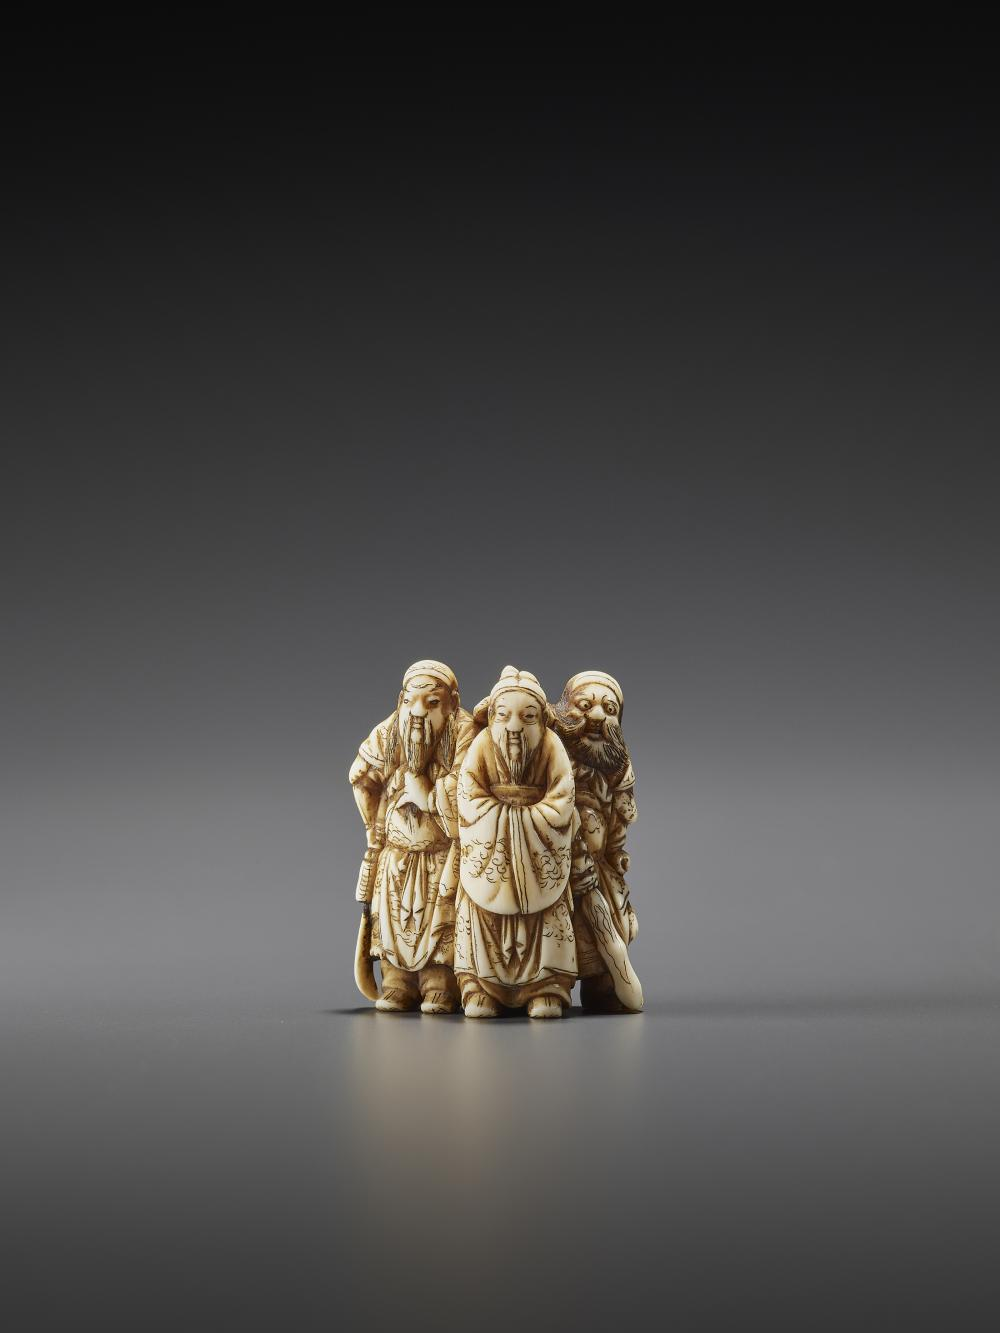 AN IVORY NETSUKE OF THE THREE HEROES OF THE HAN DYNASTY BY SEKIKO